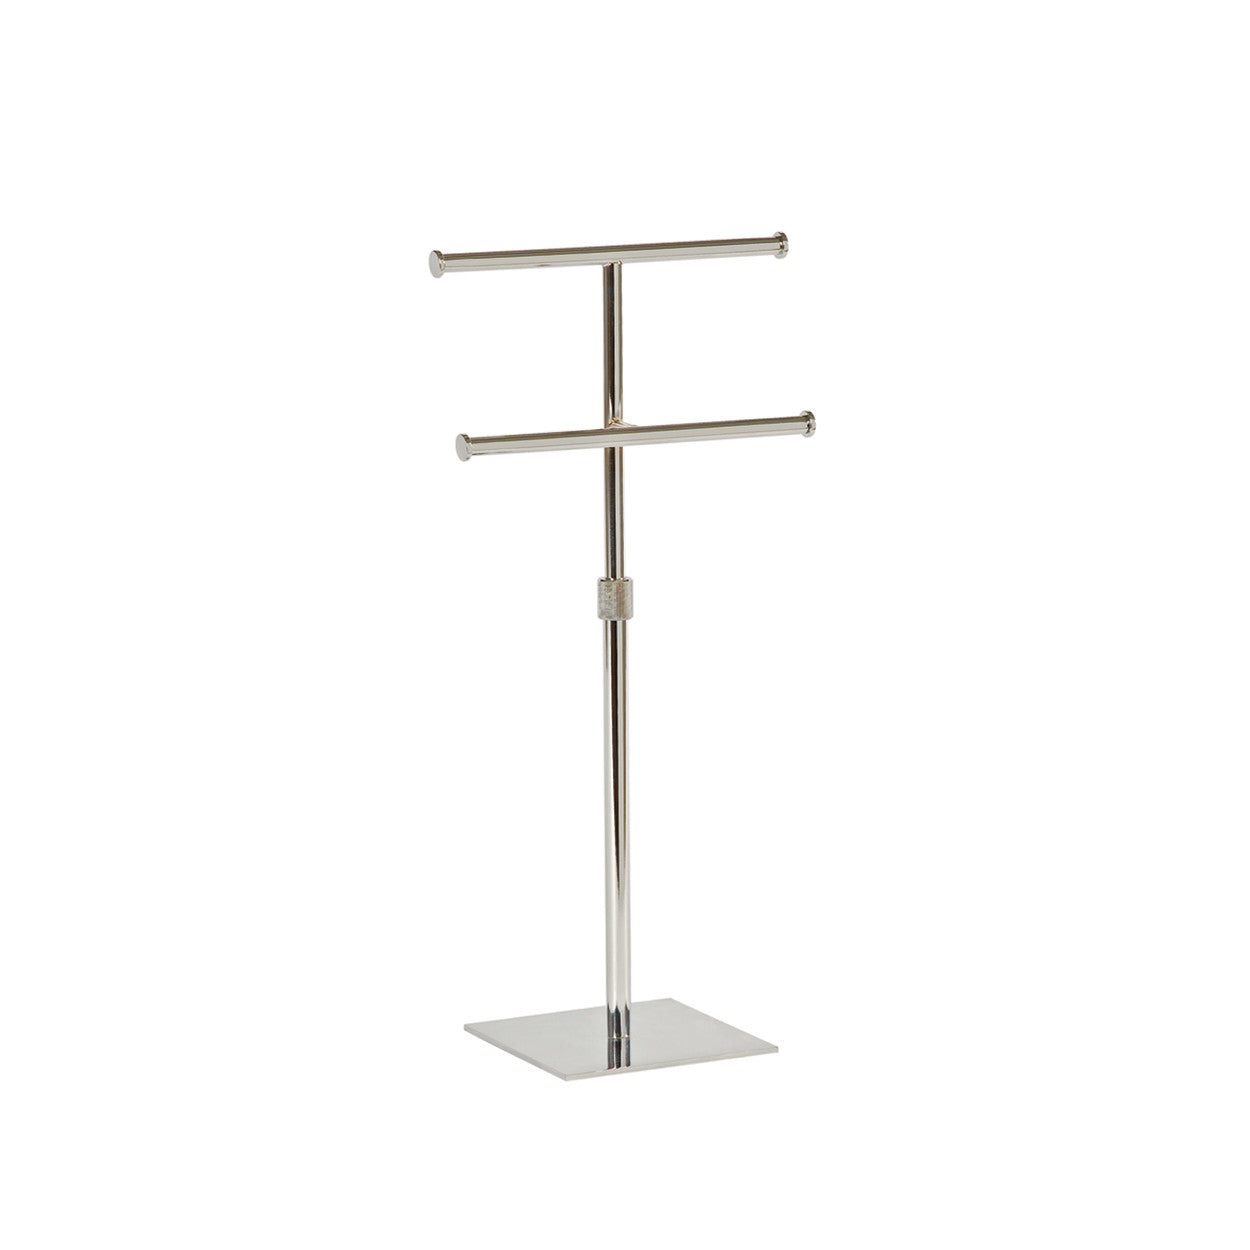 Two Tier Hanging Jewellery Display with Adjustable Height 150 mm sq base 300-570 mm Adj H (M2832CH)